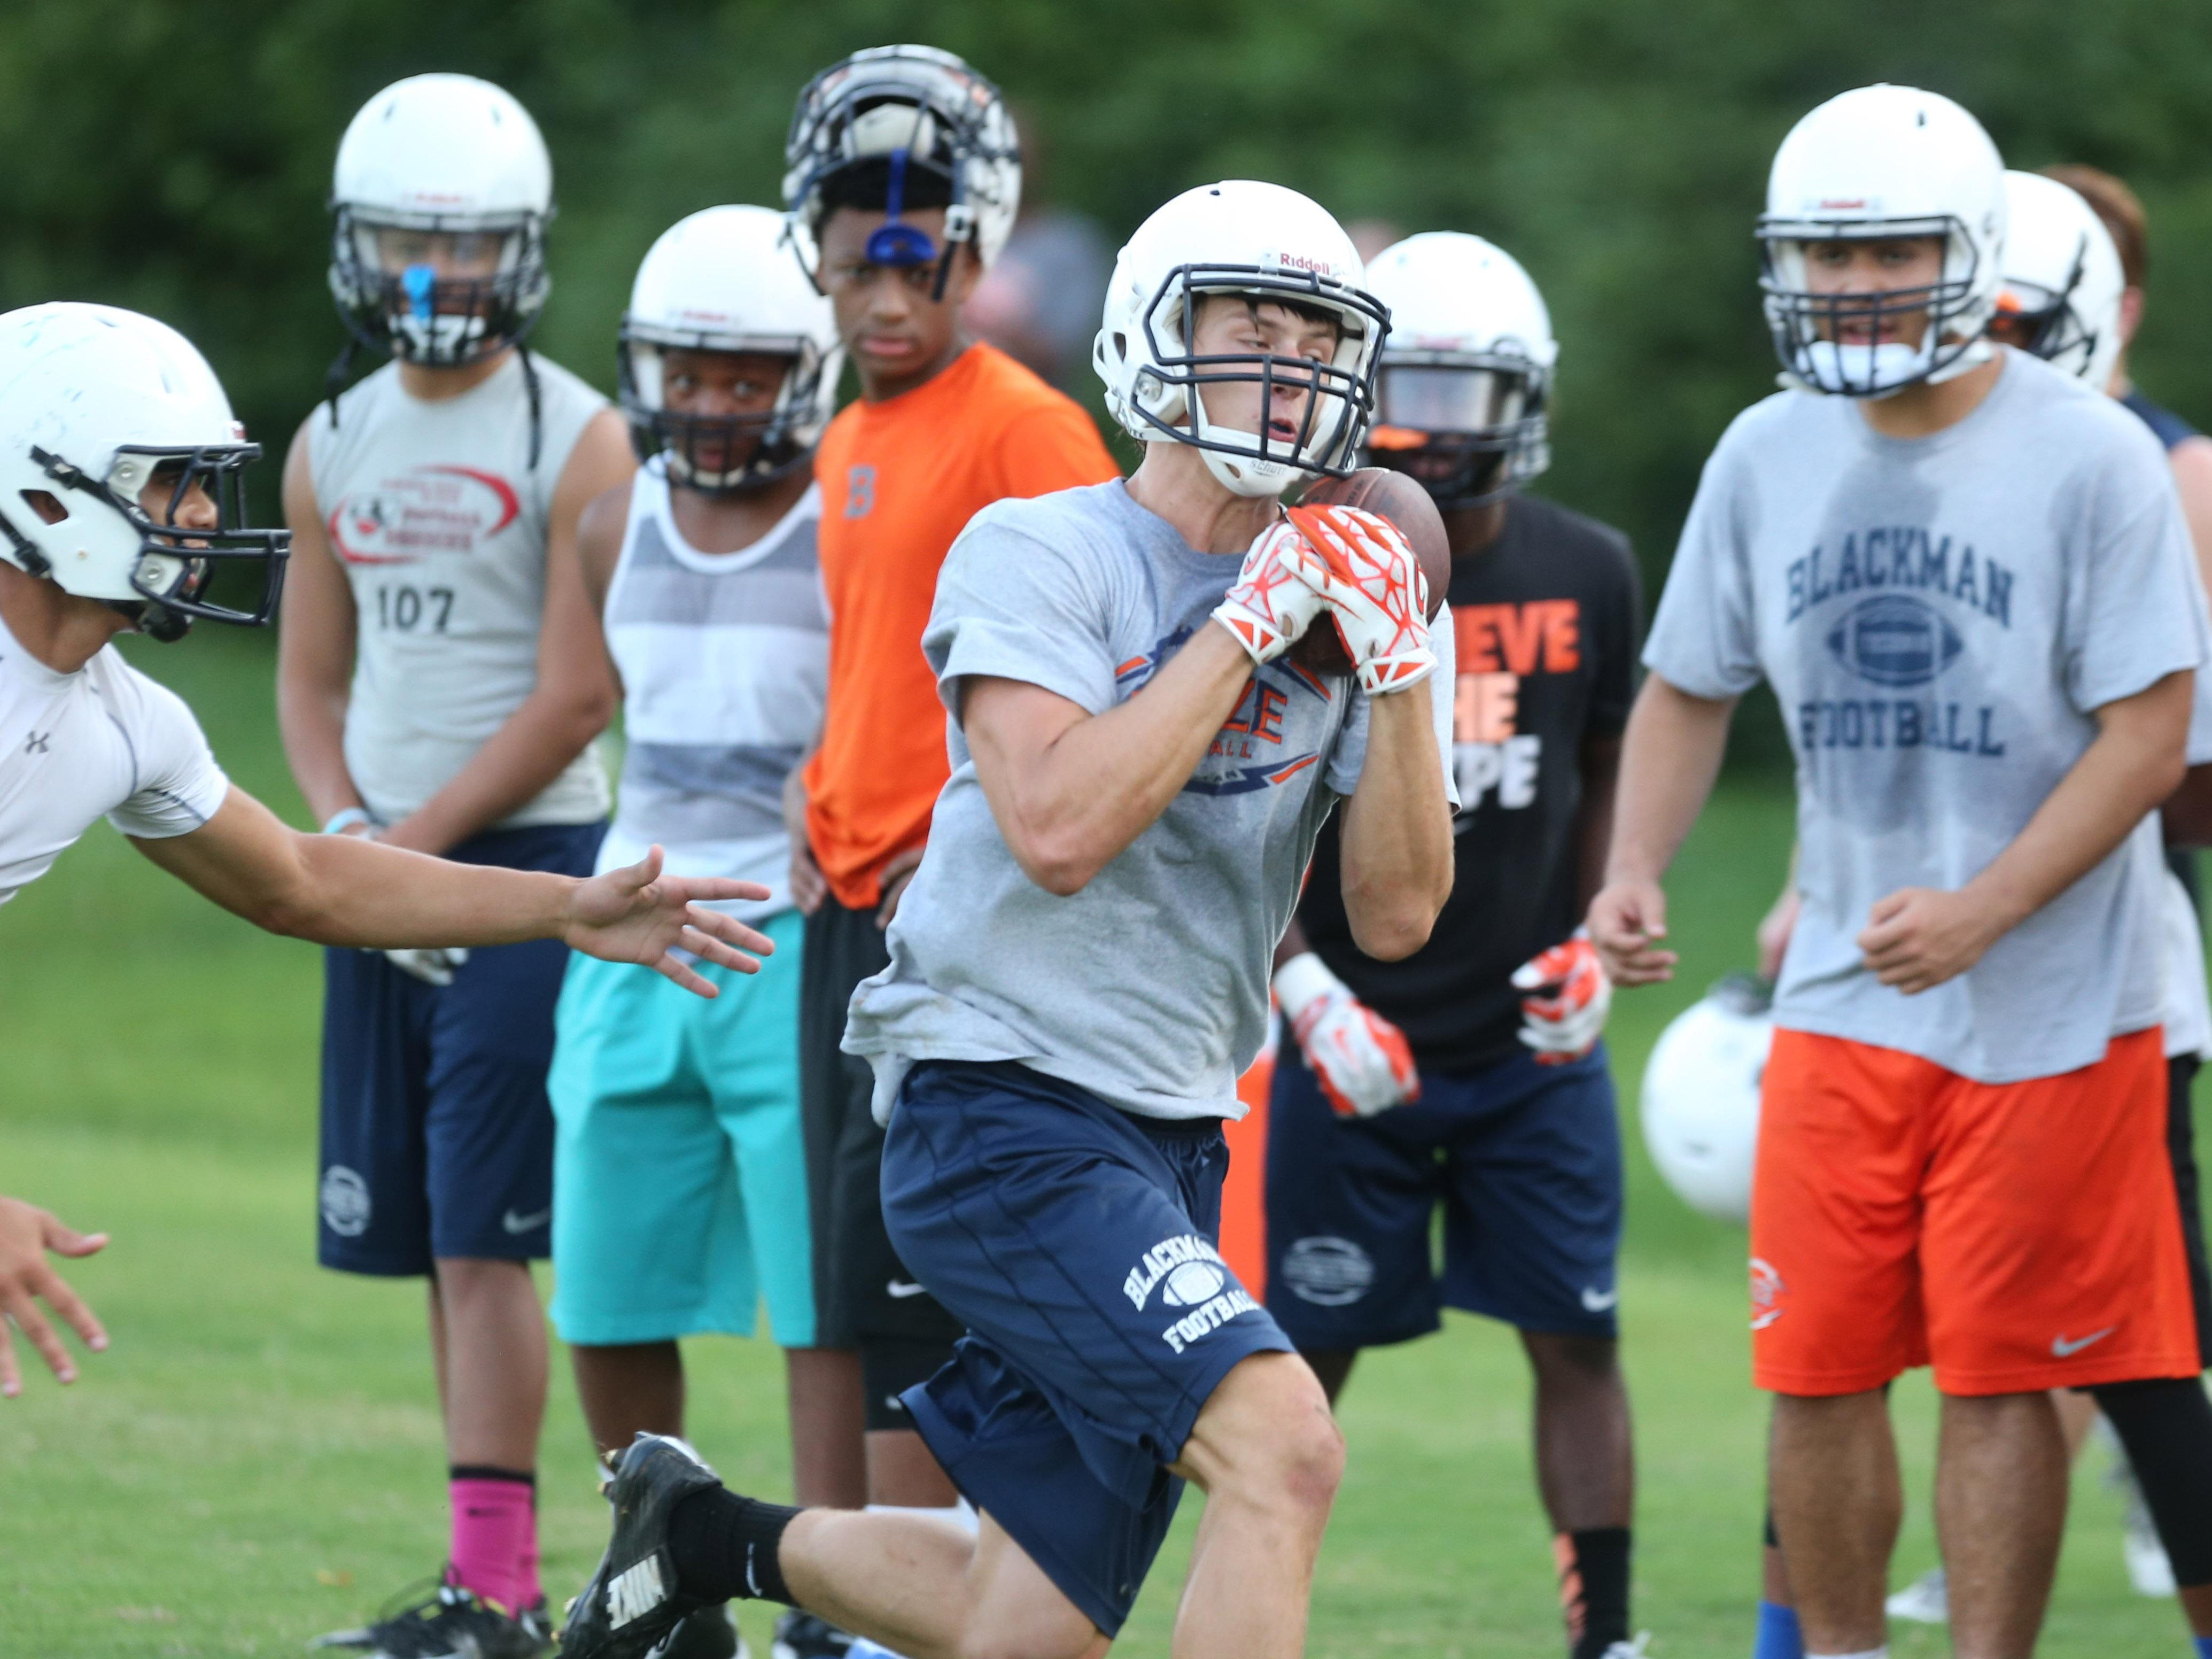 Blackman wide receiver Michael Harris pulls in a pass during Monday's practice.